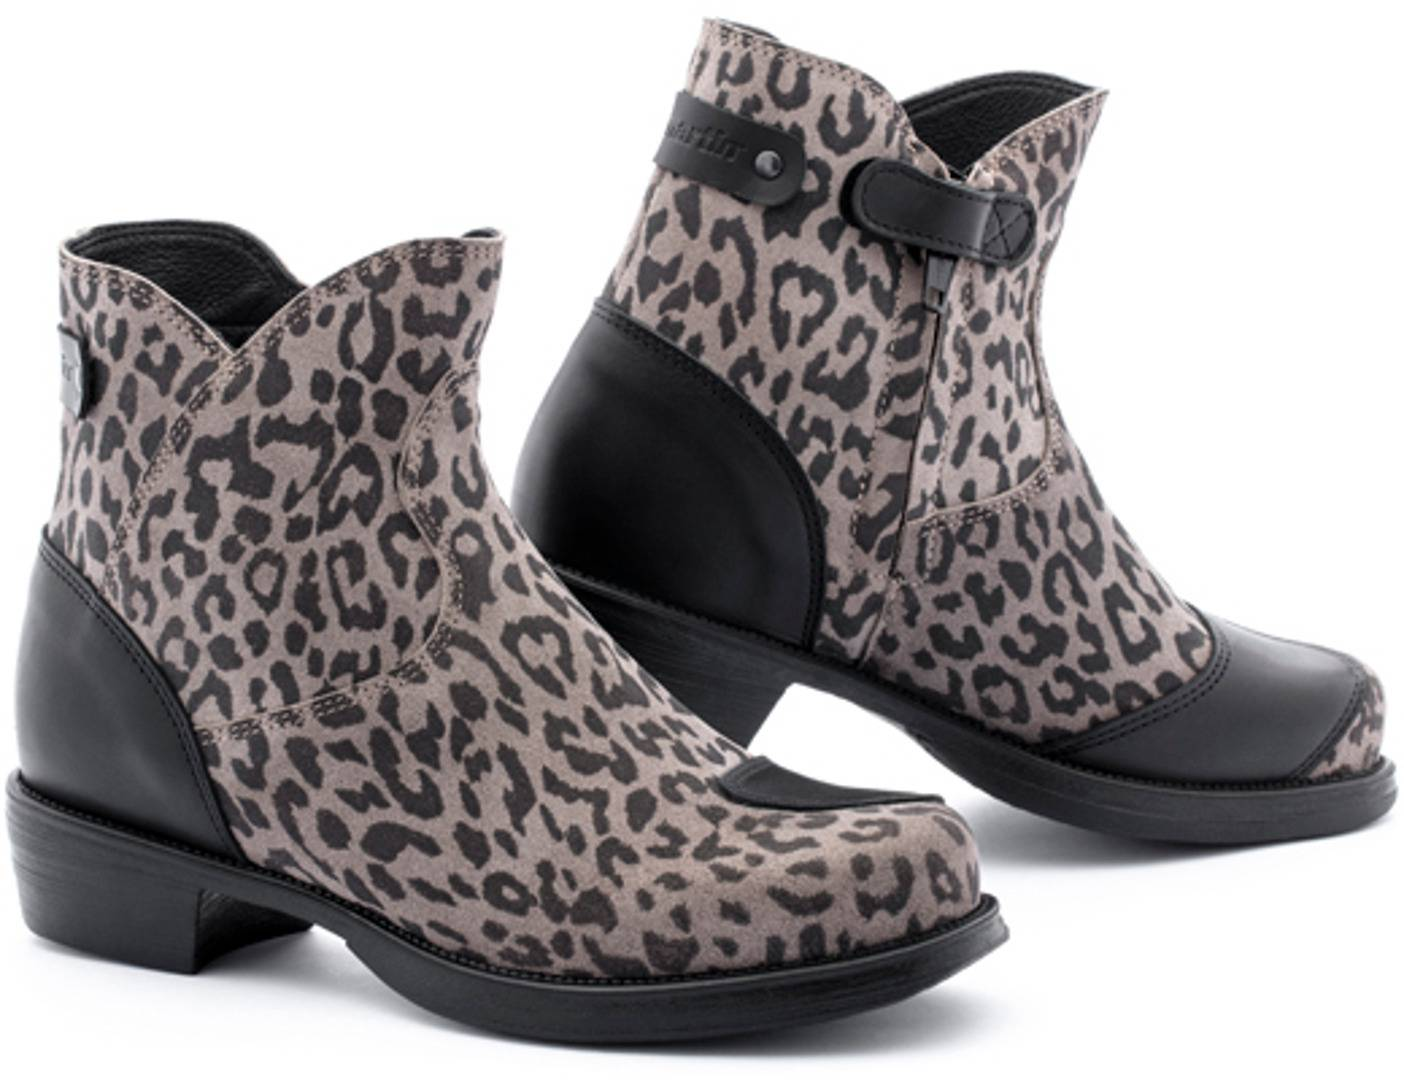 Stylmartin Pearl Leo Ladies Motorcycle Boots unisex Black Size: L